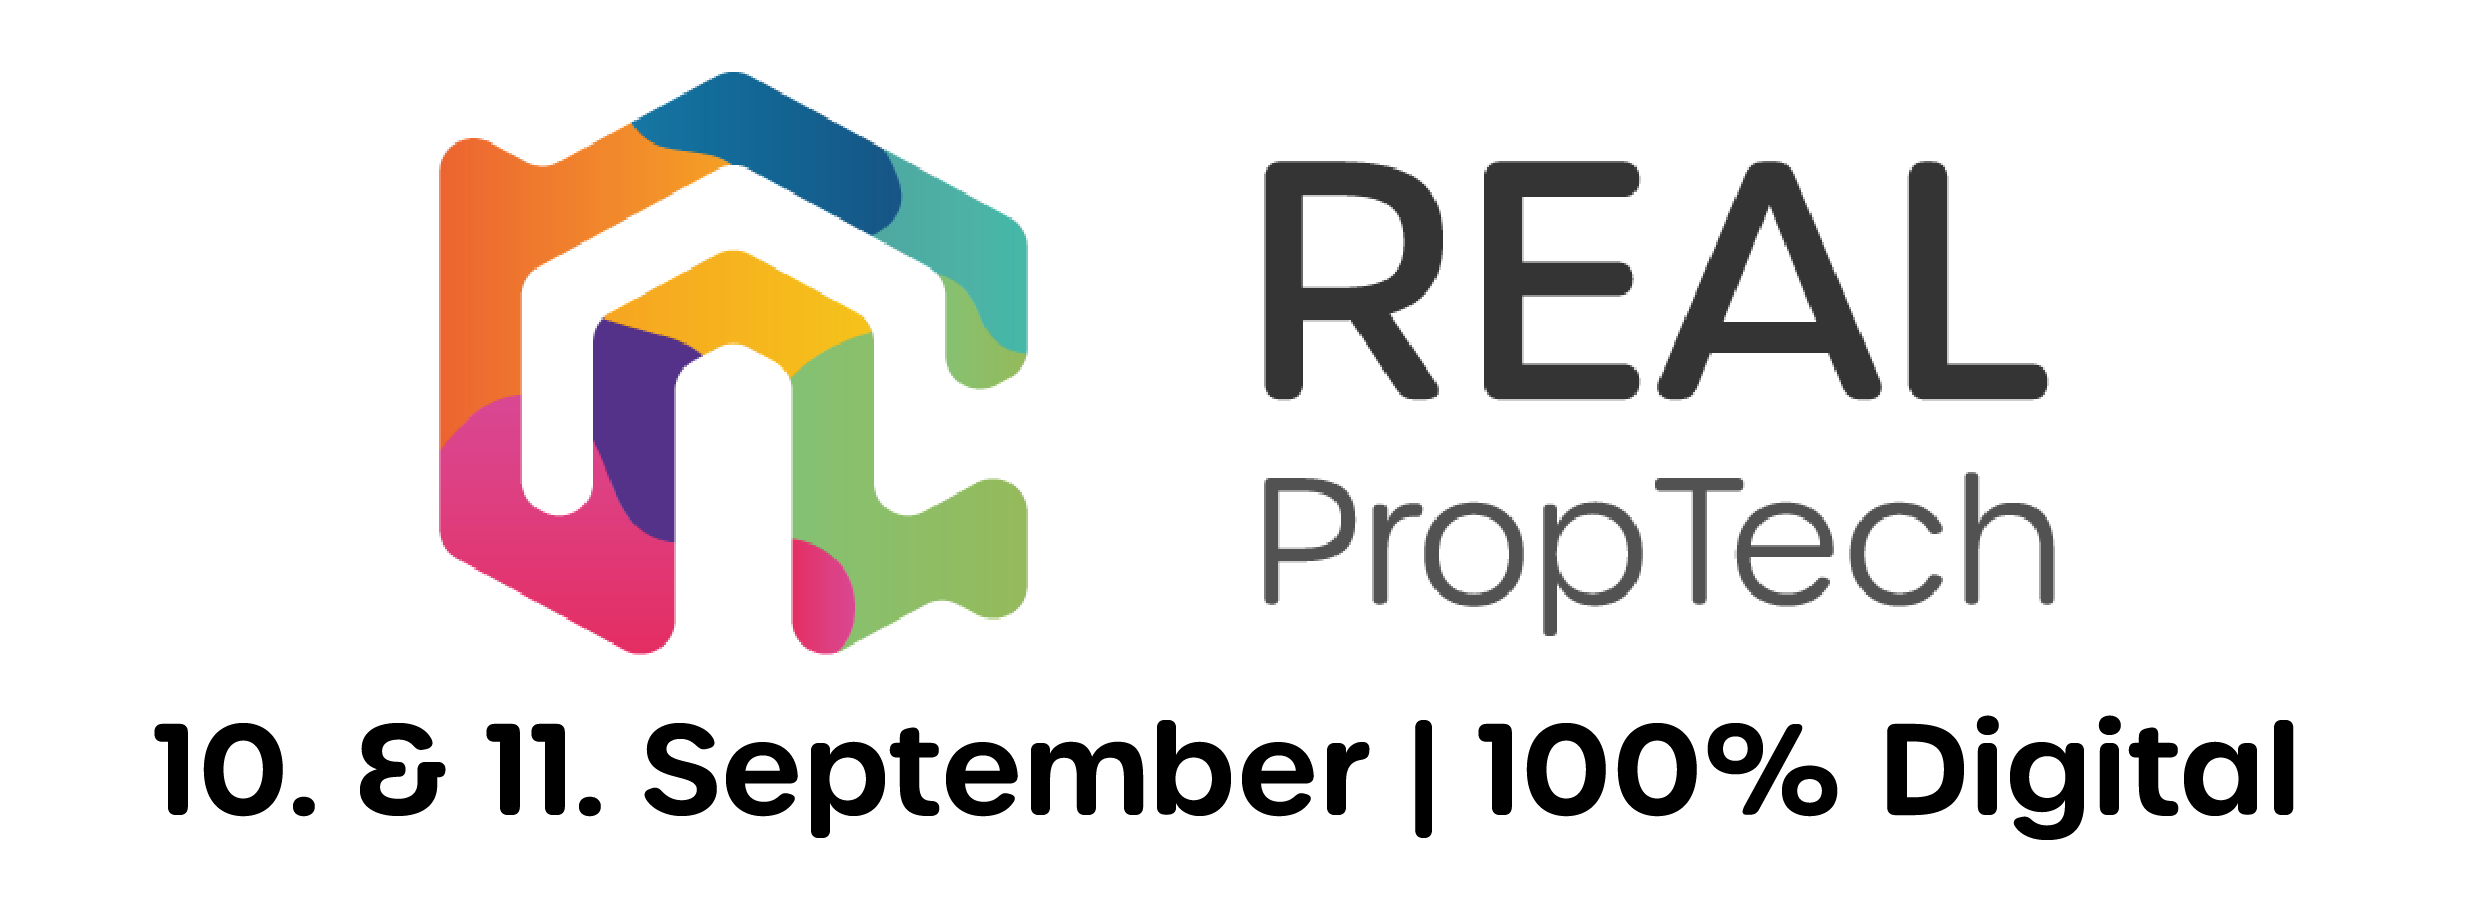 REAL PropTech